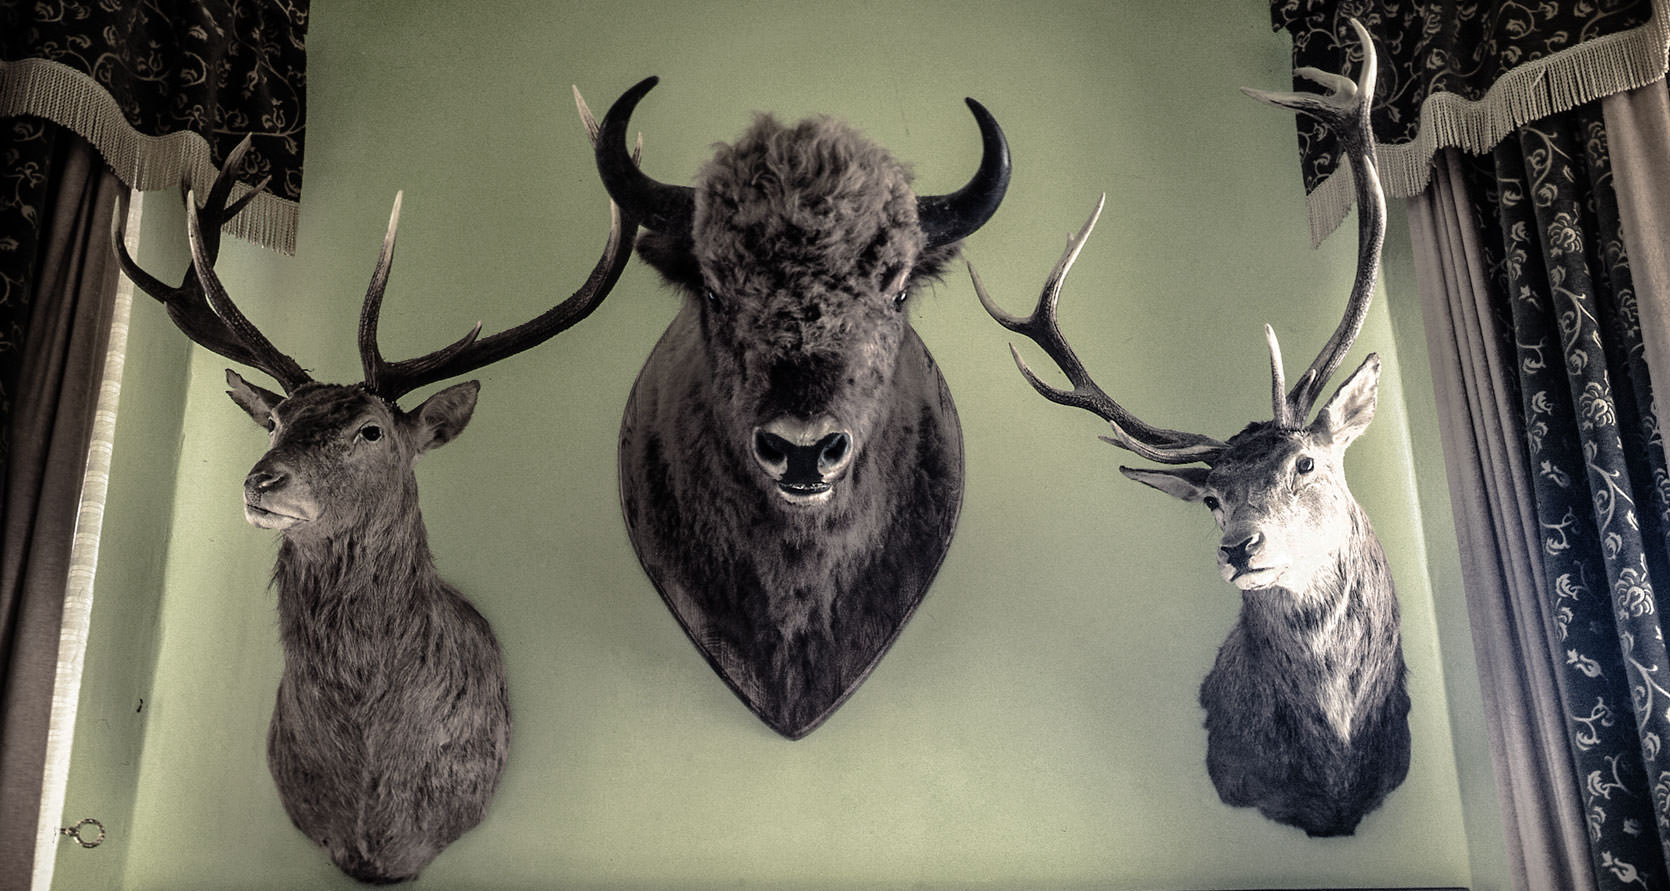 Moose and other animals displayed in Pomerania Hotel